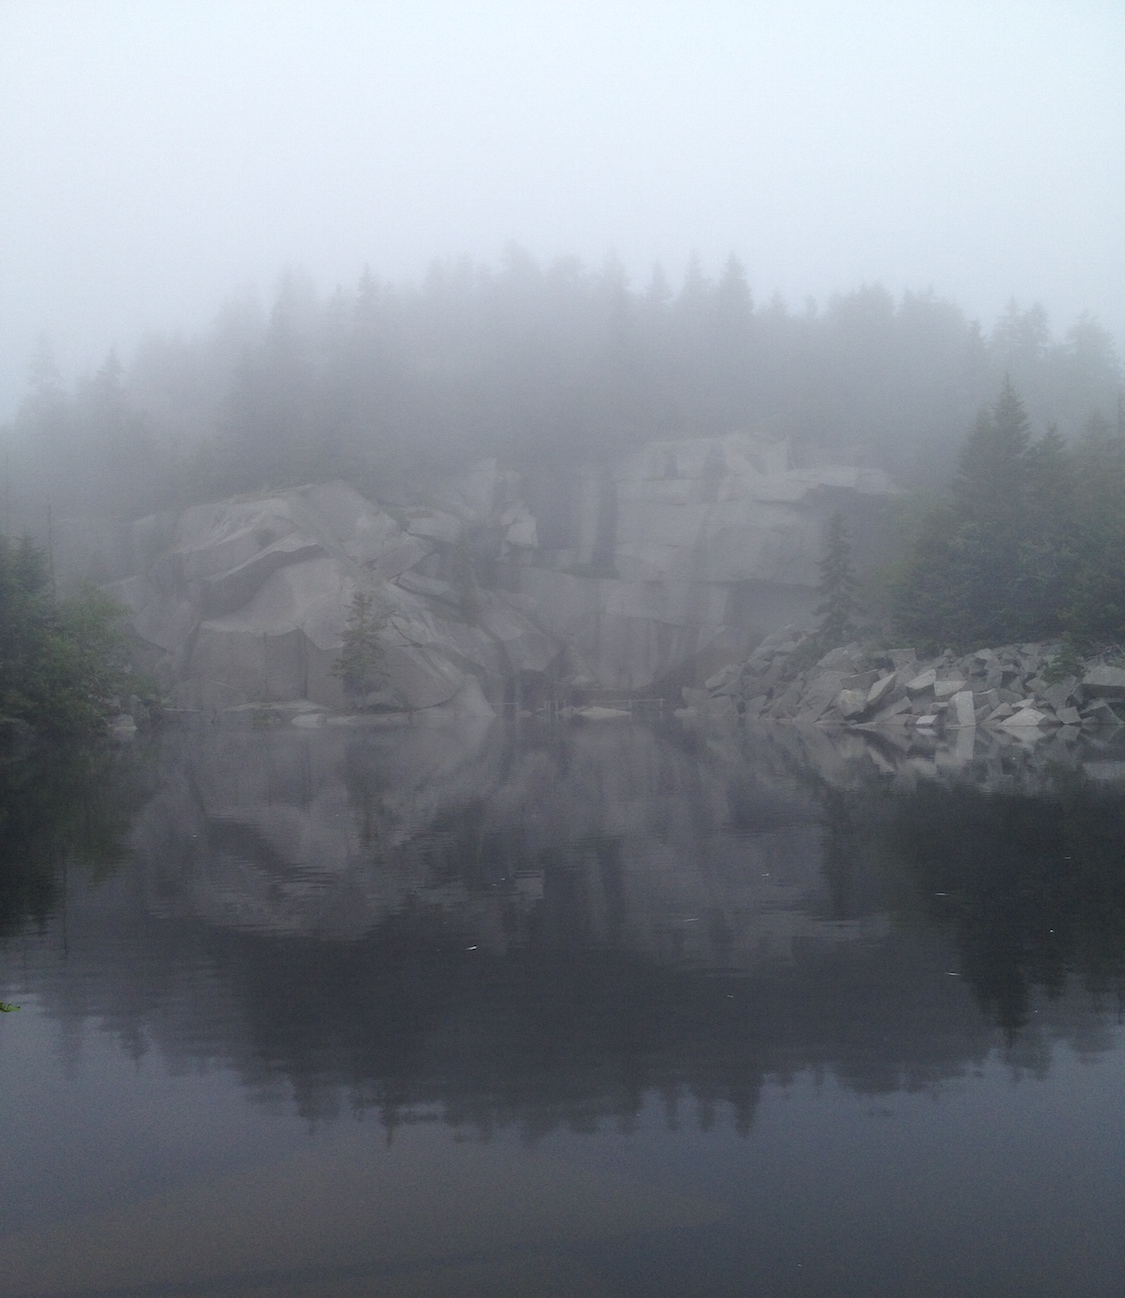 Fog rolls in over the quarry